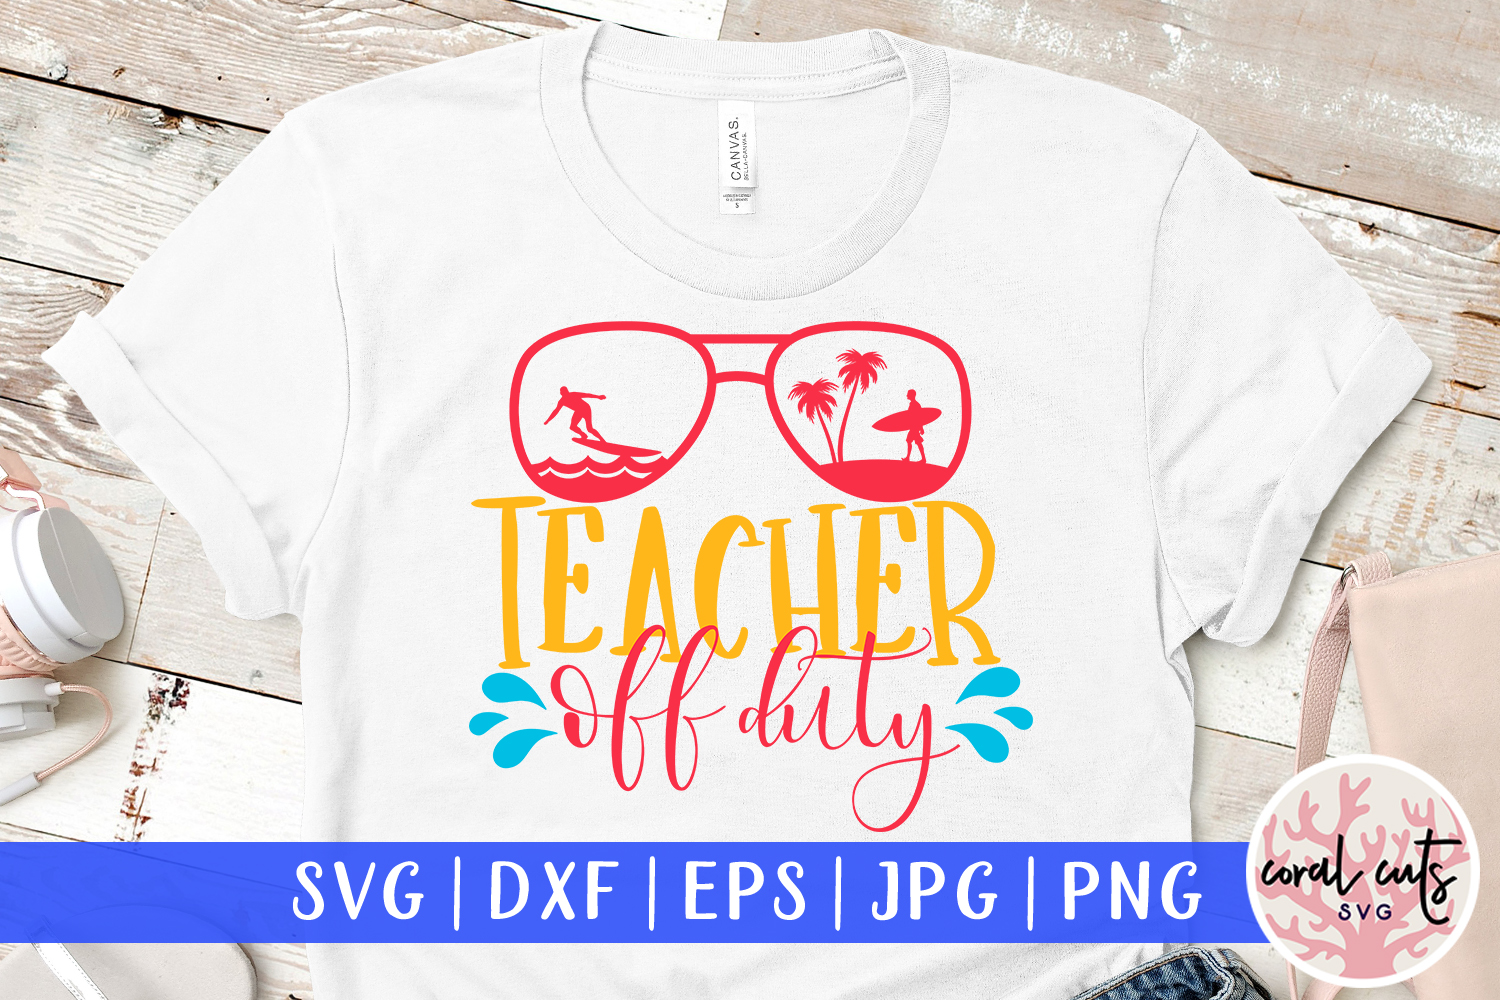 Download Free Teacher Off Duty Svg Cut File Graphic By Coralcutssvg Creative for Cricut Explore, Silhouette and other cutting machines.